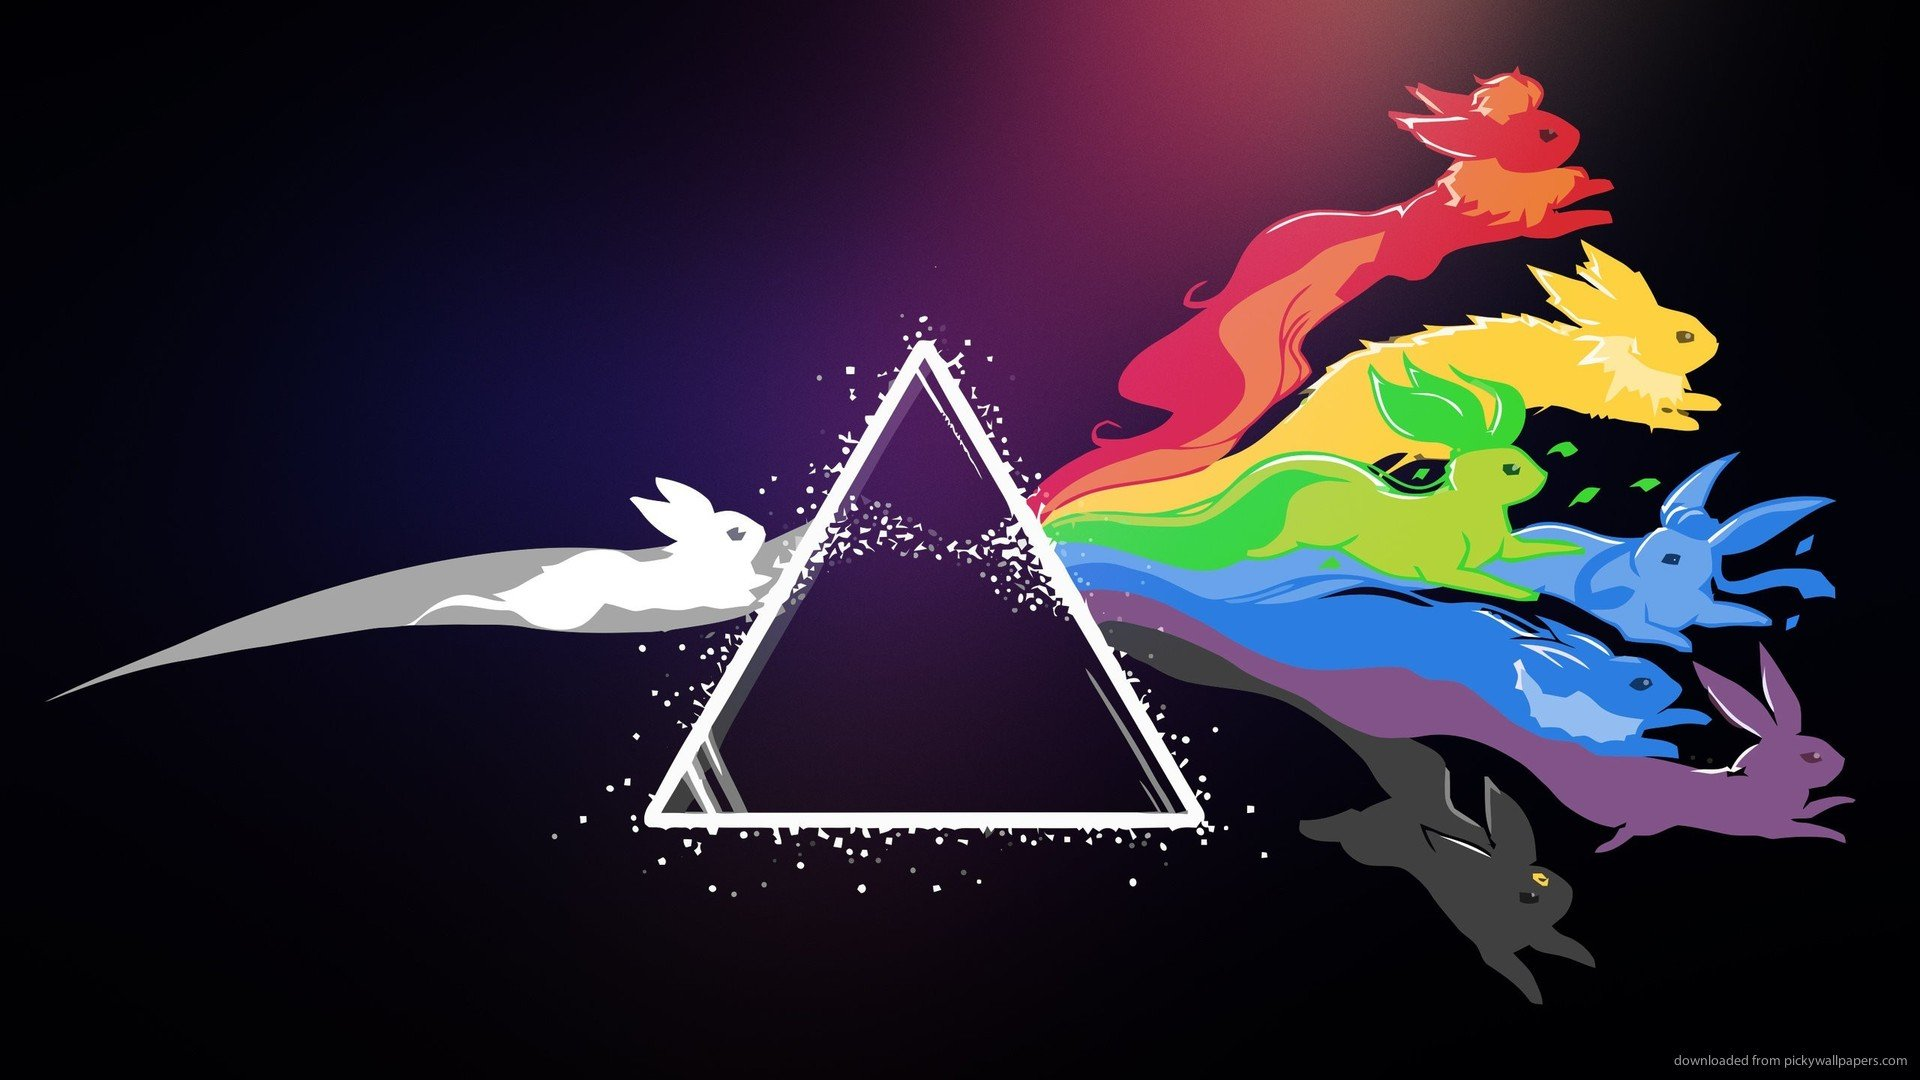 Blackberry iPad Evee Pink Floyd Style Screensaver For Kindle3 And DX 1920x1080